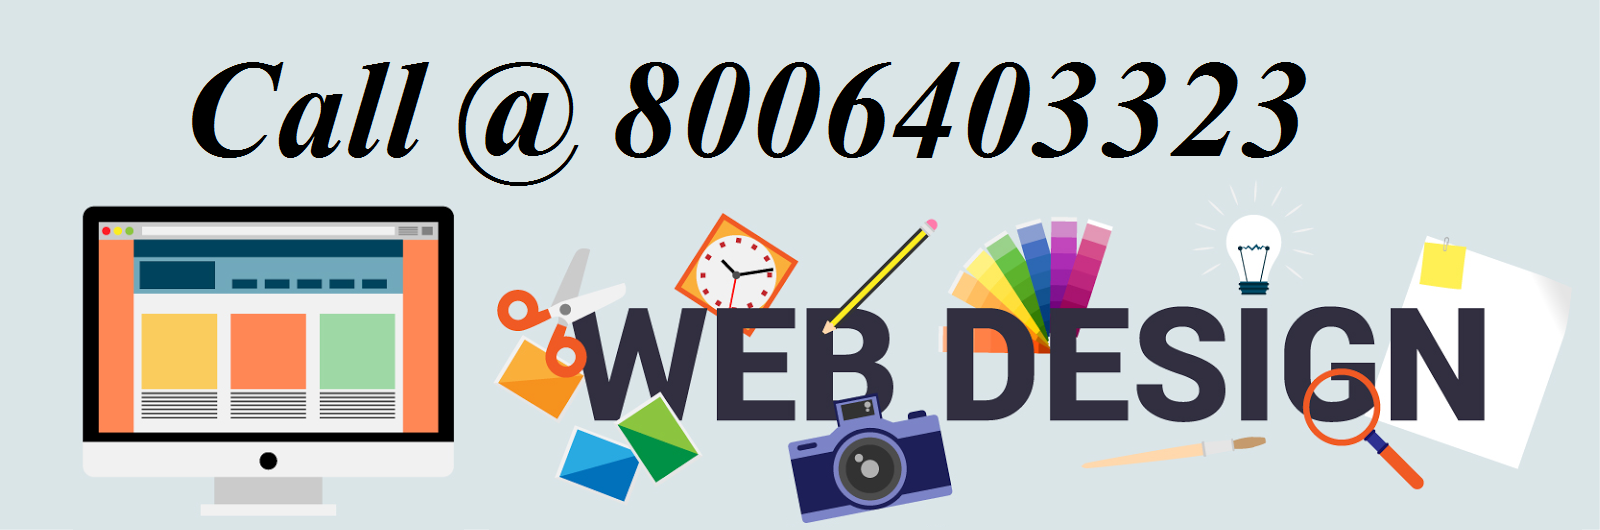 Customize Web Designing Agency Faridabad Website Designing Company In Meerut Web Development Company In Meerut Social Media Marketing